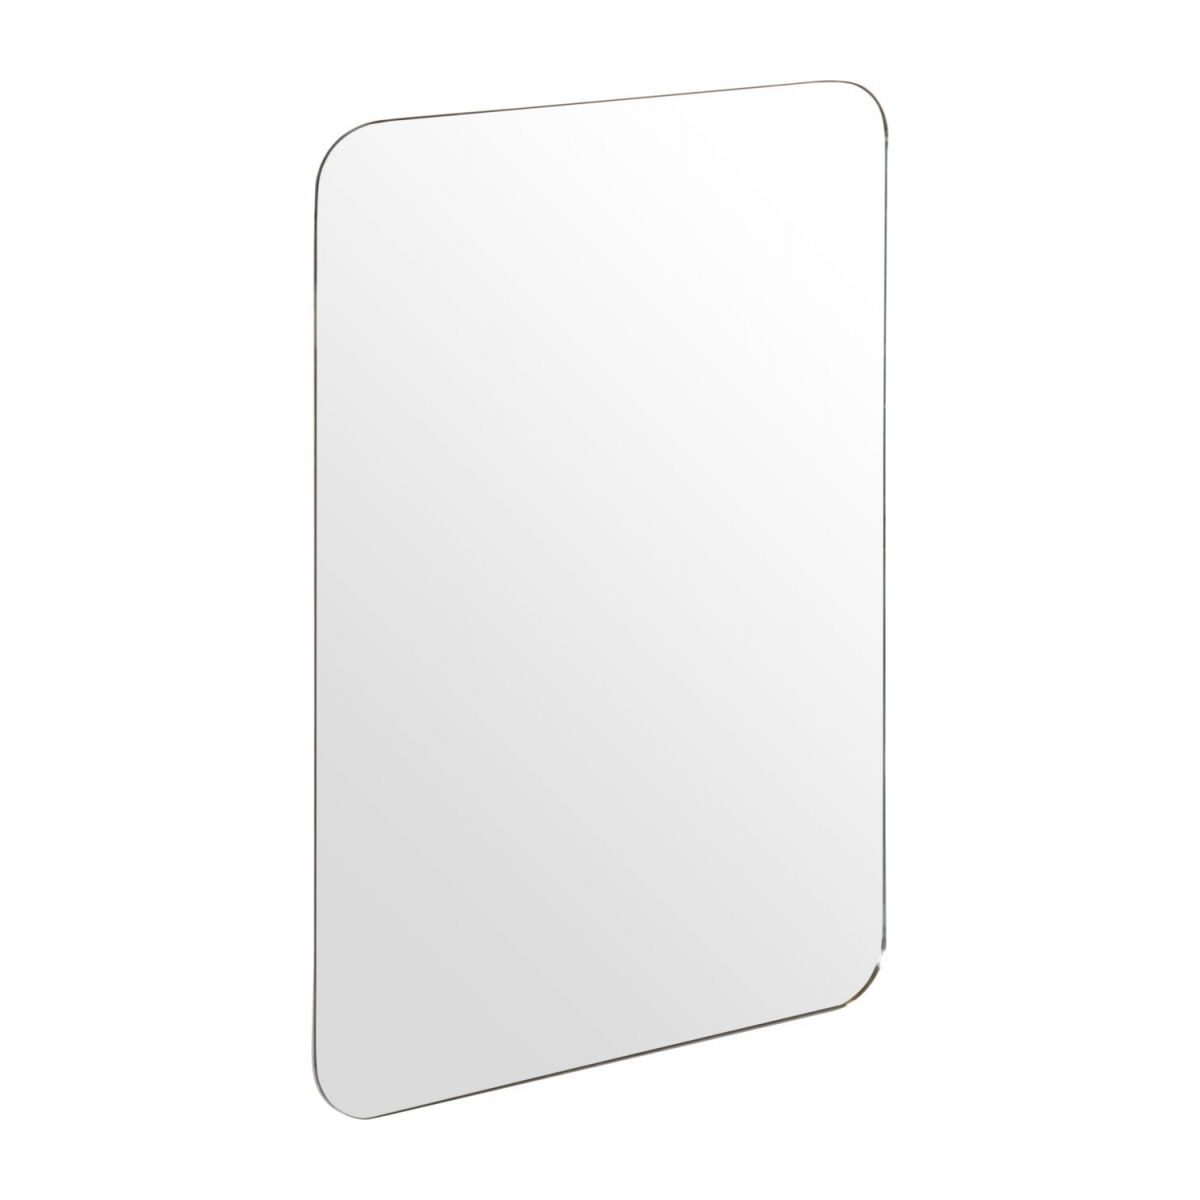 Mirror 20cm made in stainless steel n°1